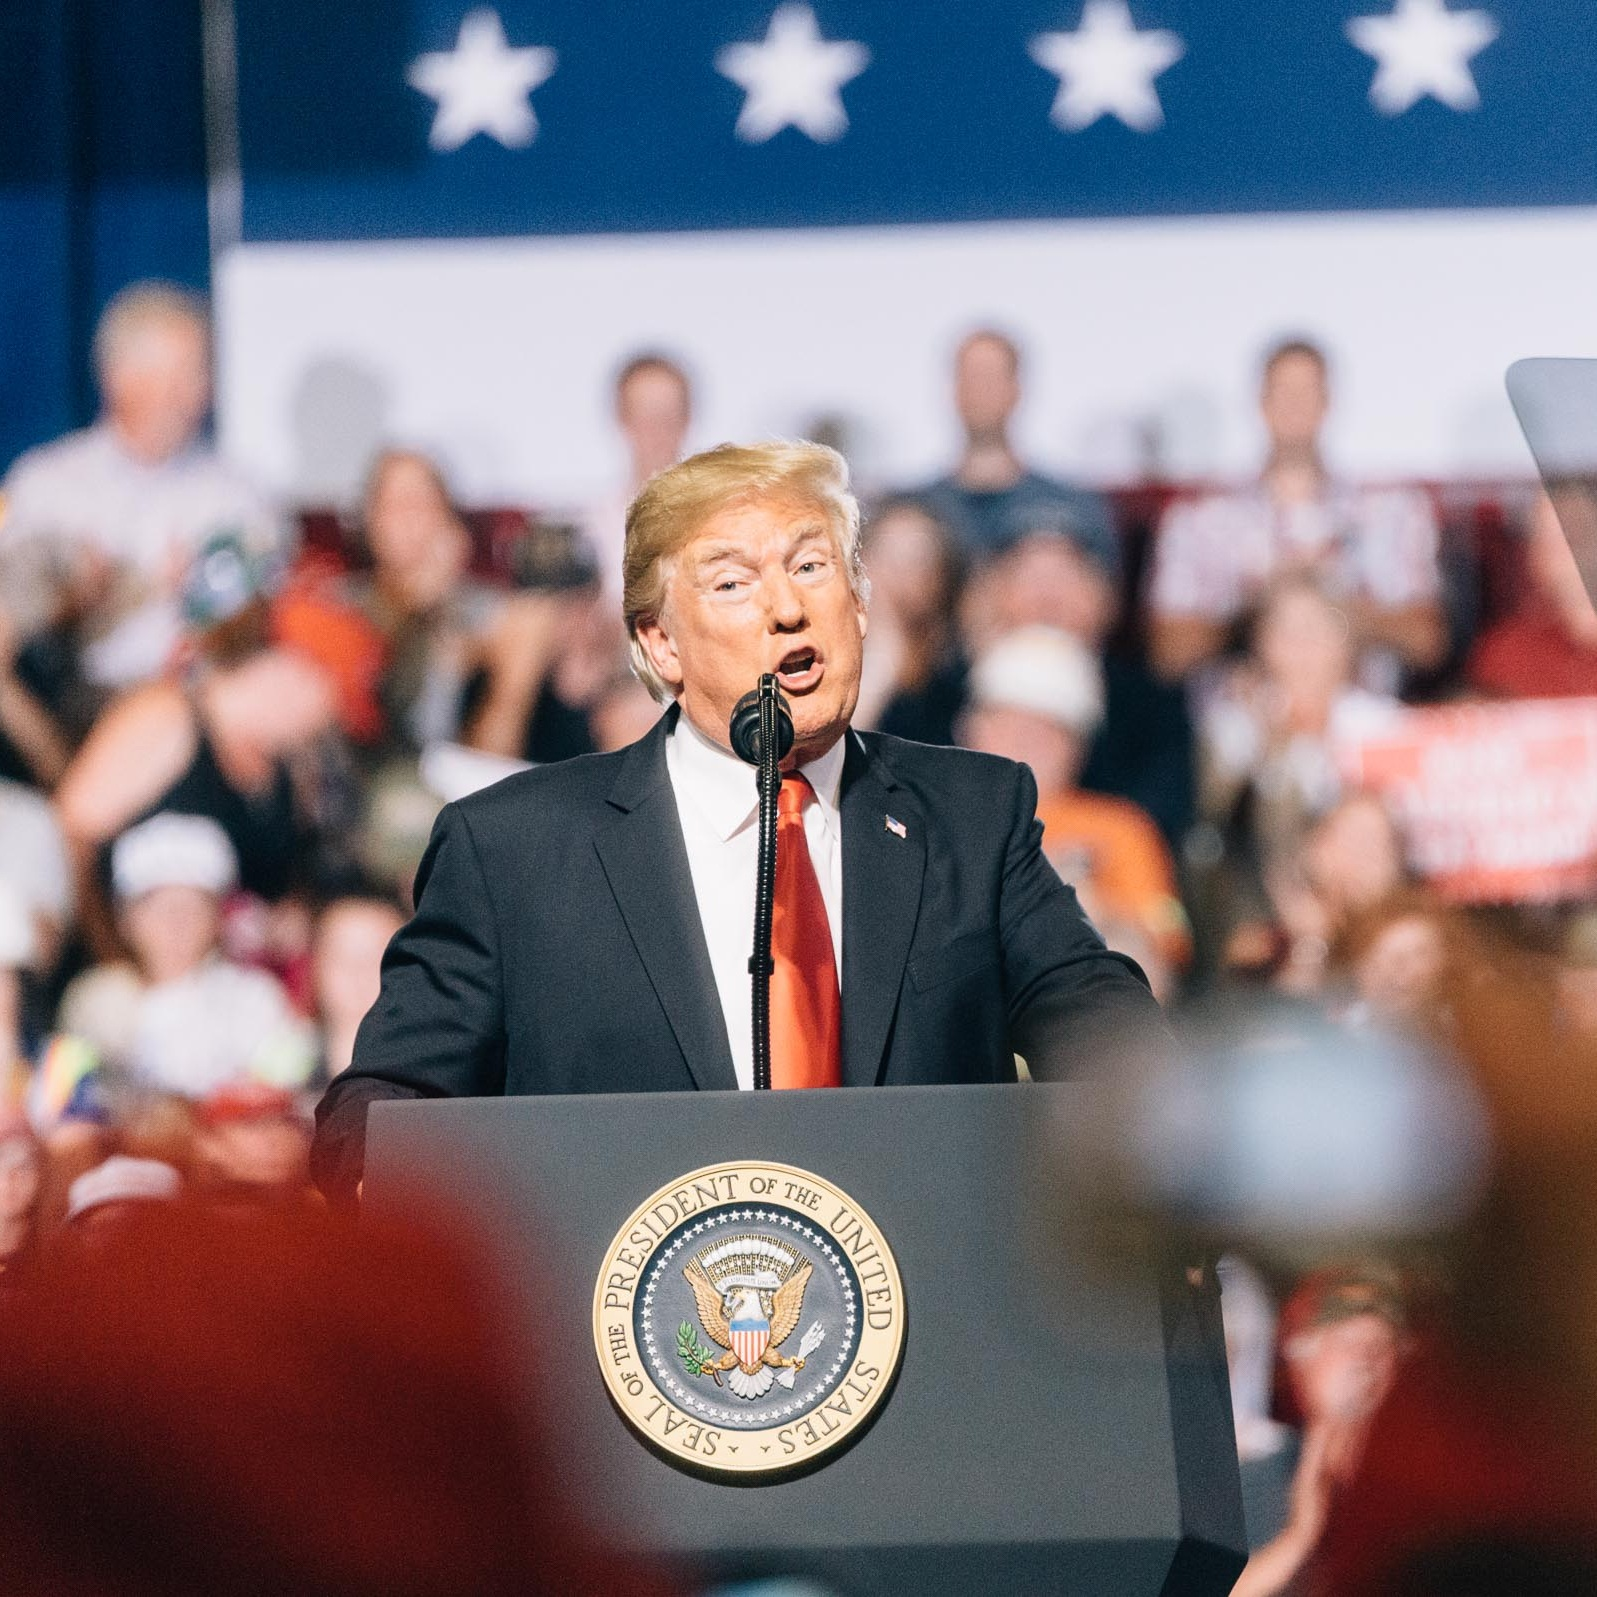 President Donald Trump speaking to an audience in the Pacific Recycling Arena in Great Falls, Montana. ©Tony Bynum